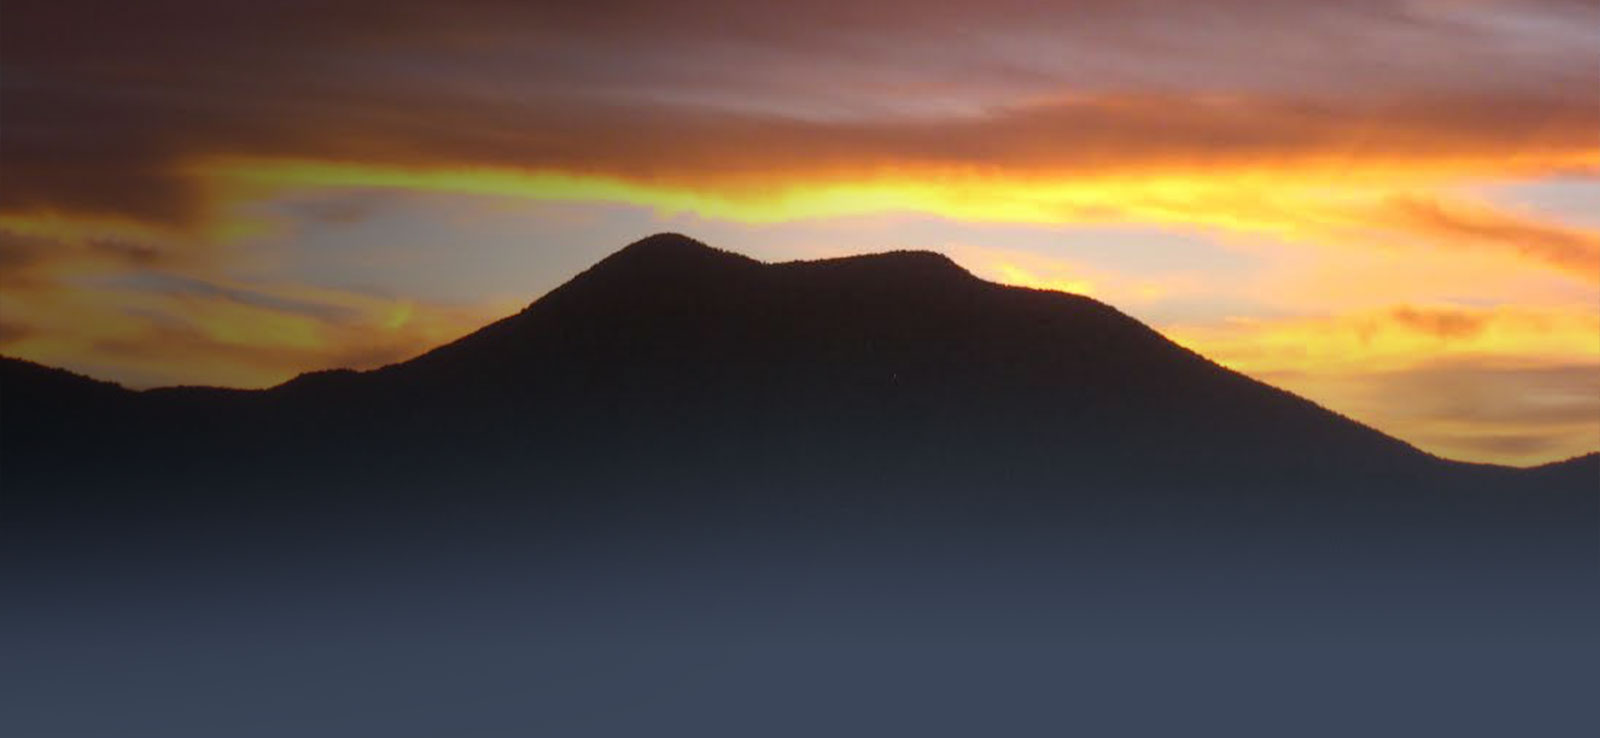 Mountain silhouette against yellow and orange susnet